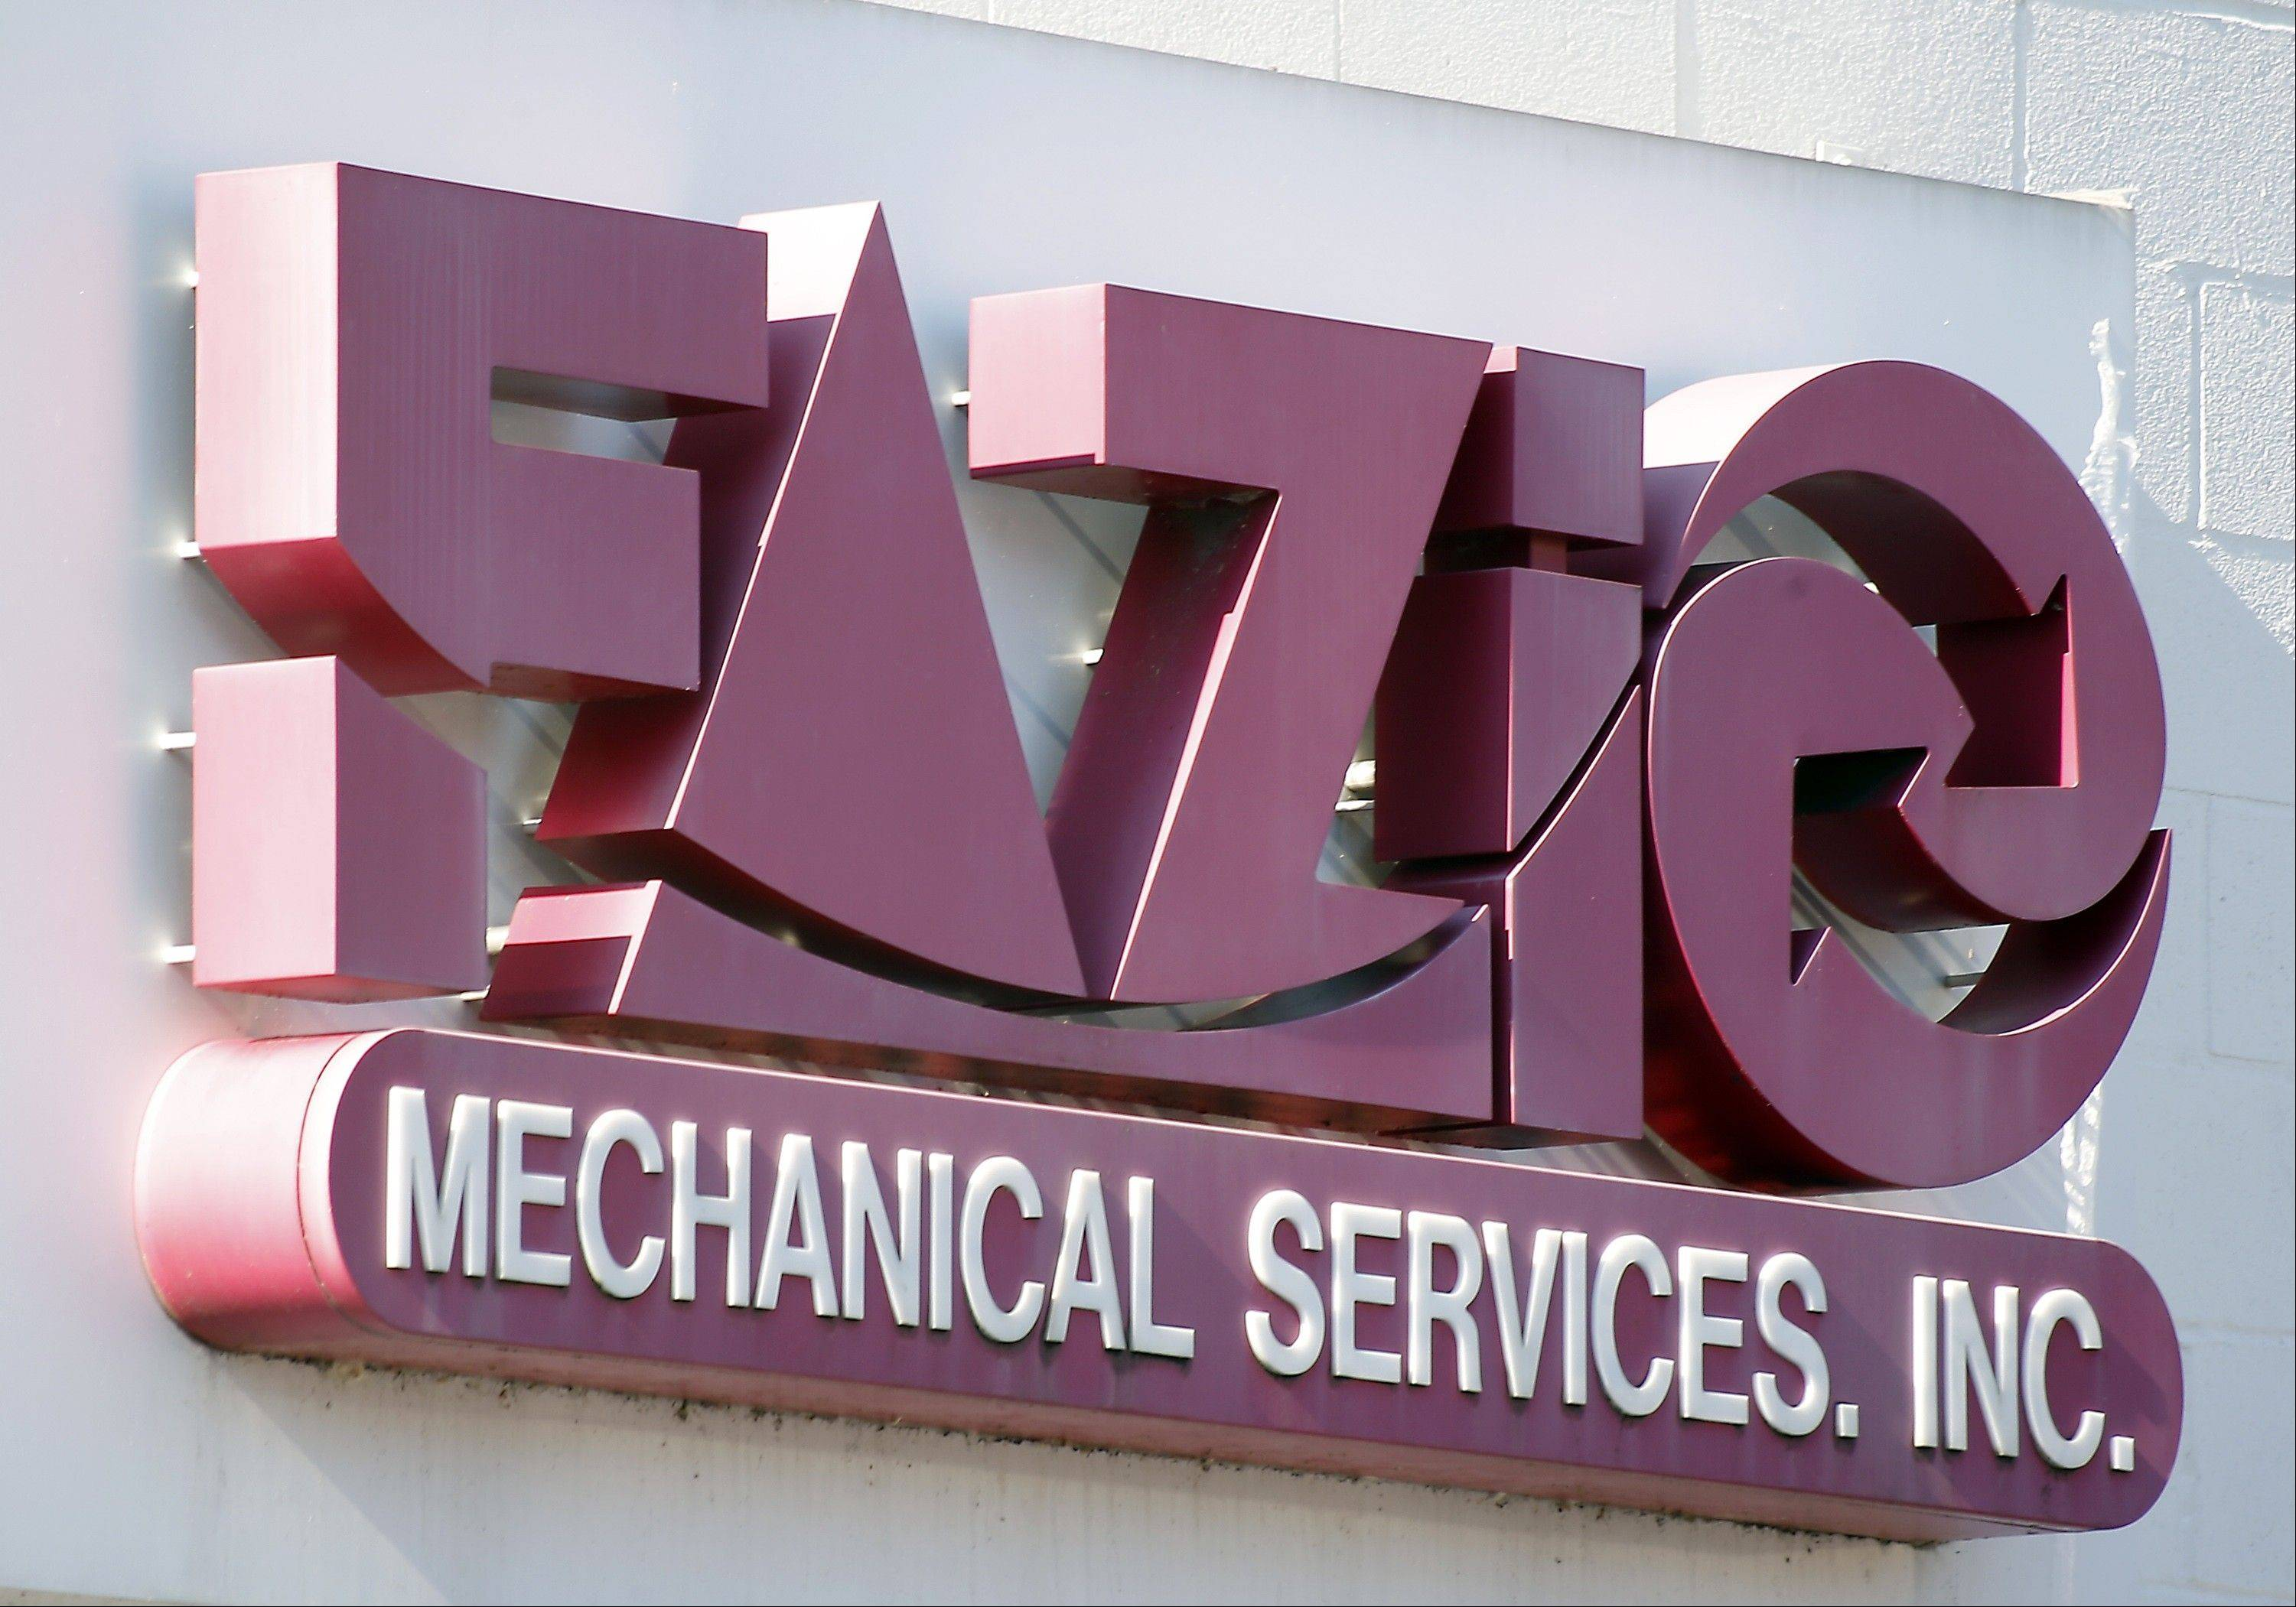 A sign for Fazio Mechanical Services Inc. at their location in Sharpsburg, Pa.